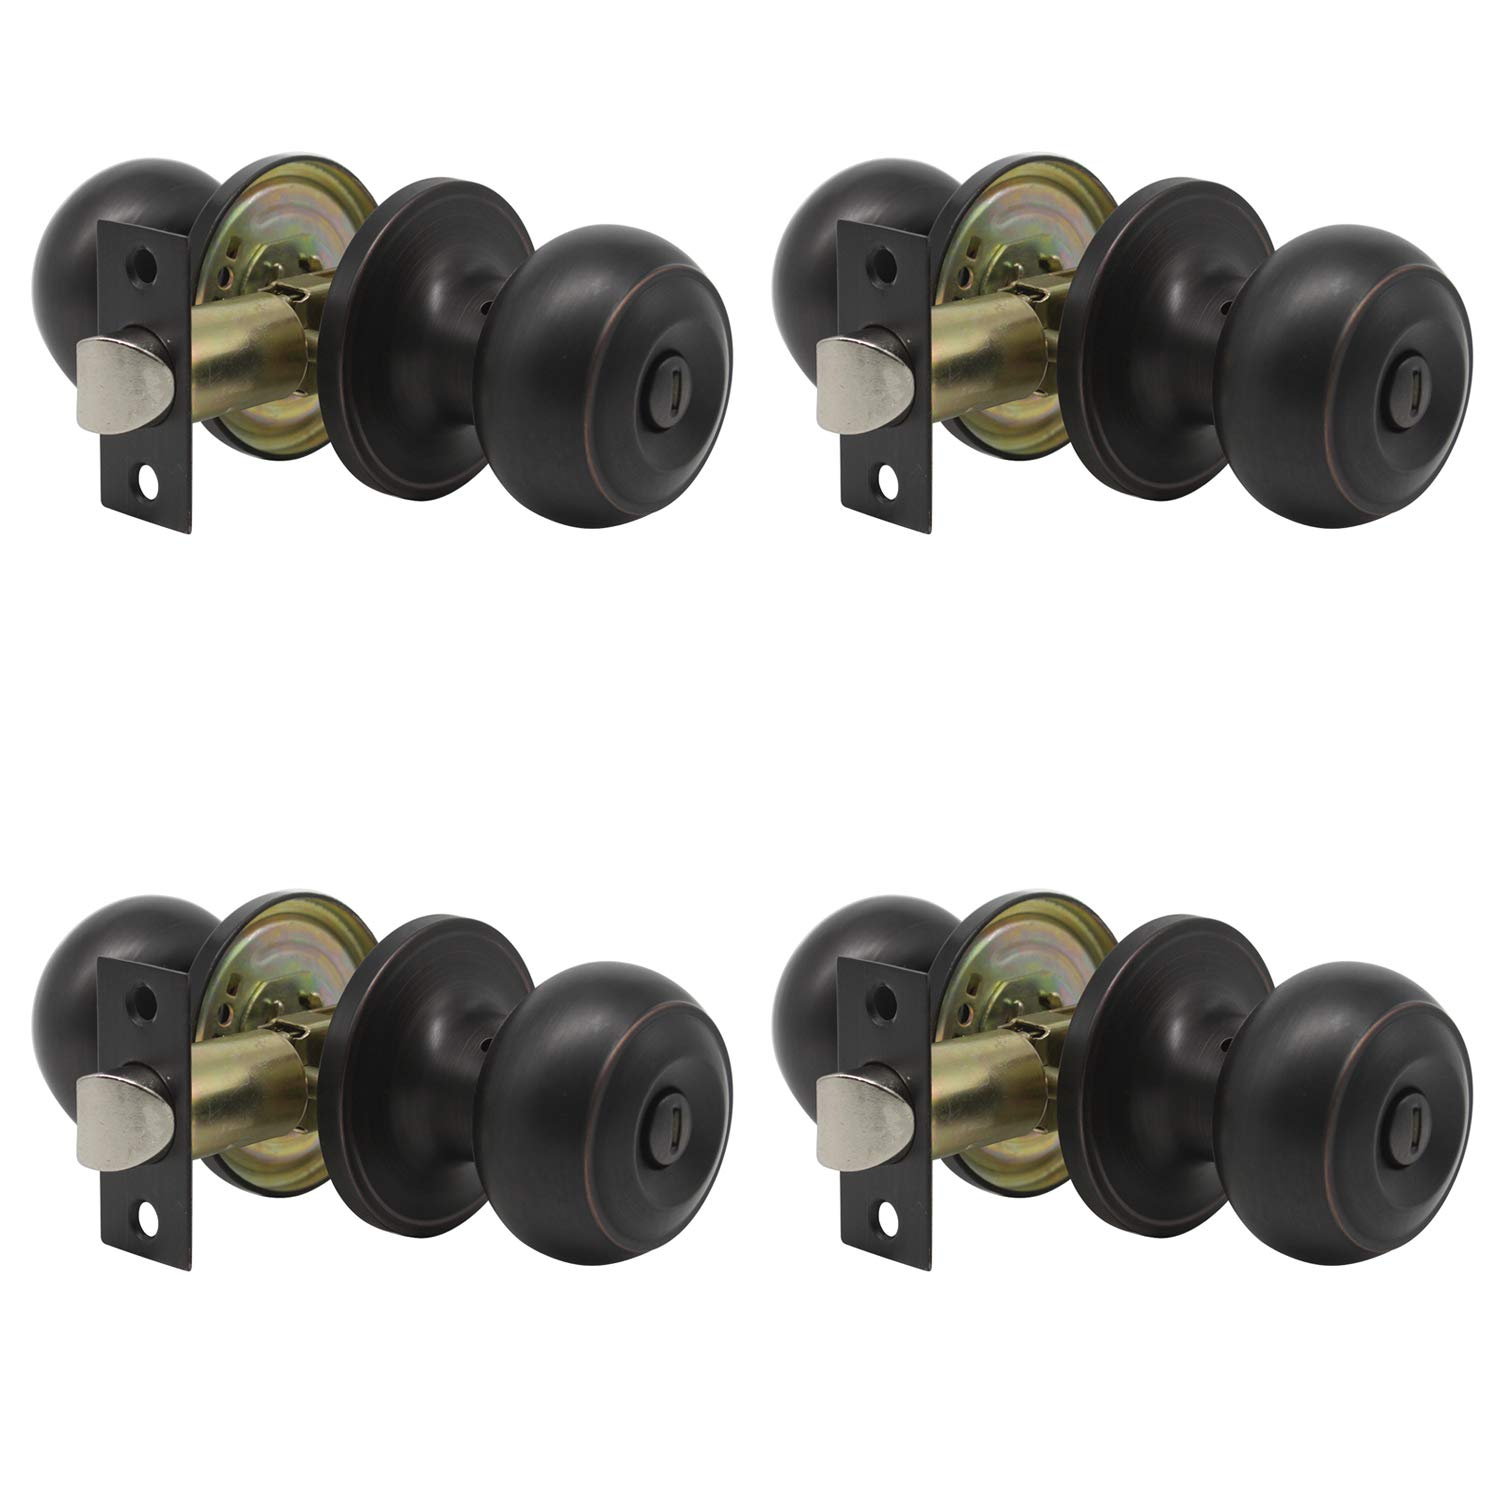 Probrico Oil Rubbed Bronze Privacy Door Knobs Interior Bed and Bath Keyless Handles Locksets (4 Pack)